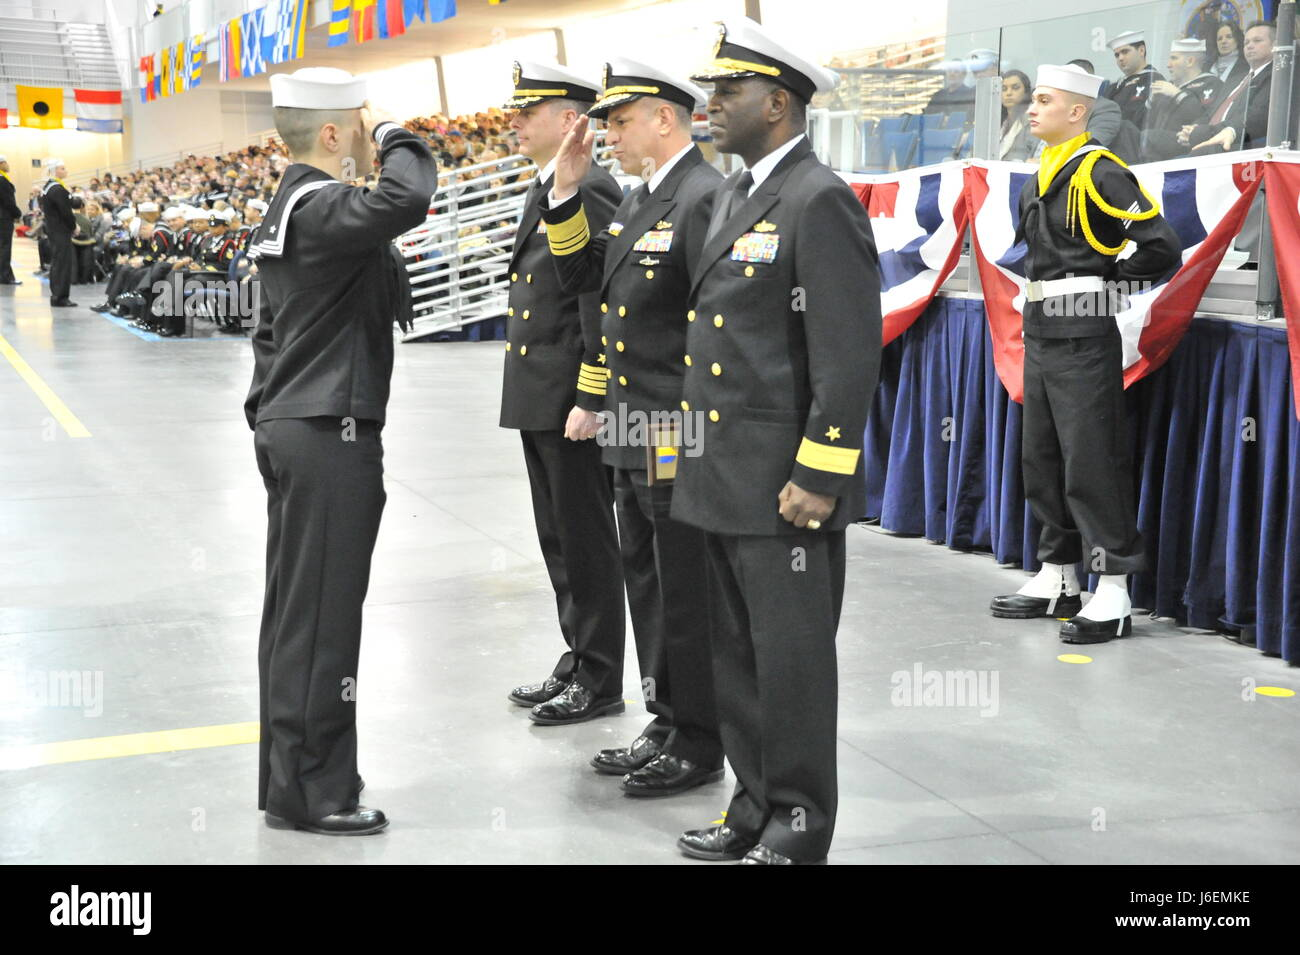 161216-N-CM124-295   GREAT LAKES, Ill. (Dec. 16, 2016) Chief of Naval Personnel Robert P. Burke salutes a recruit Stock Photo